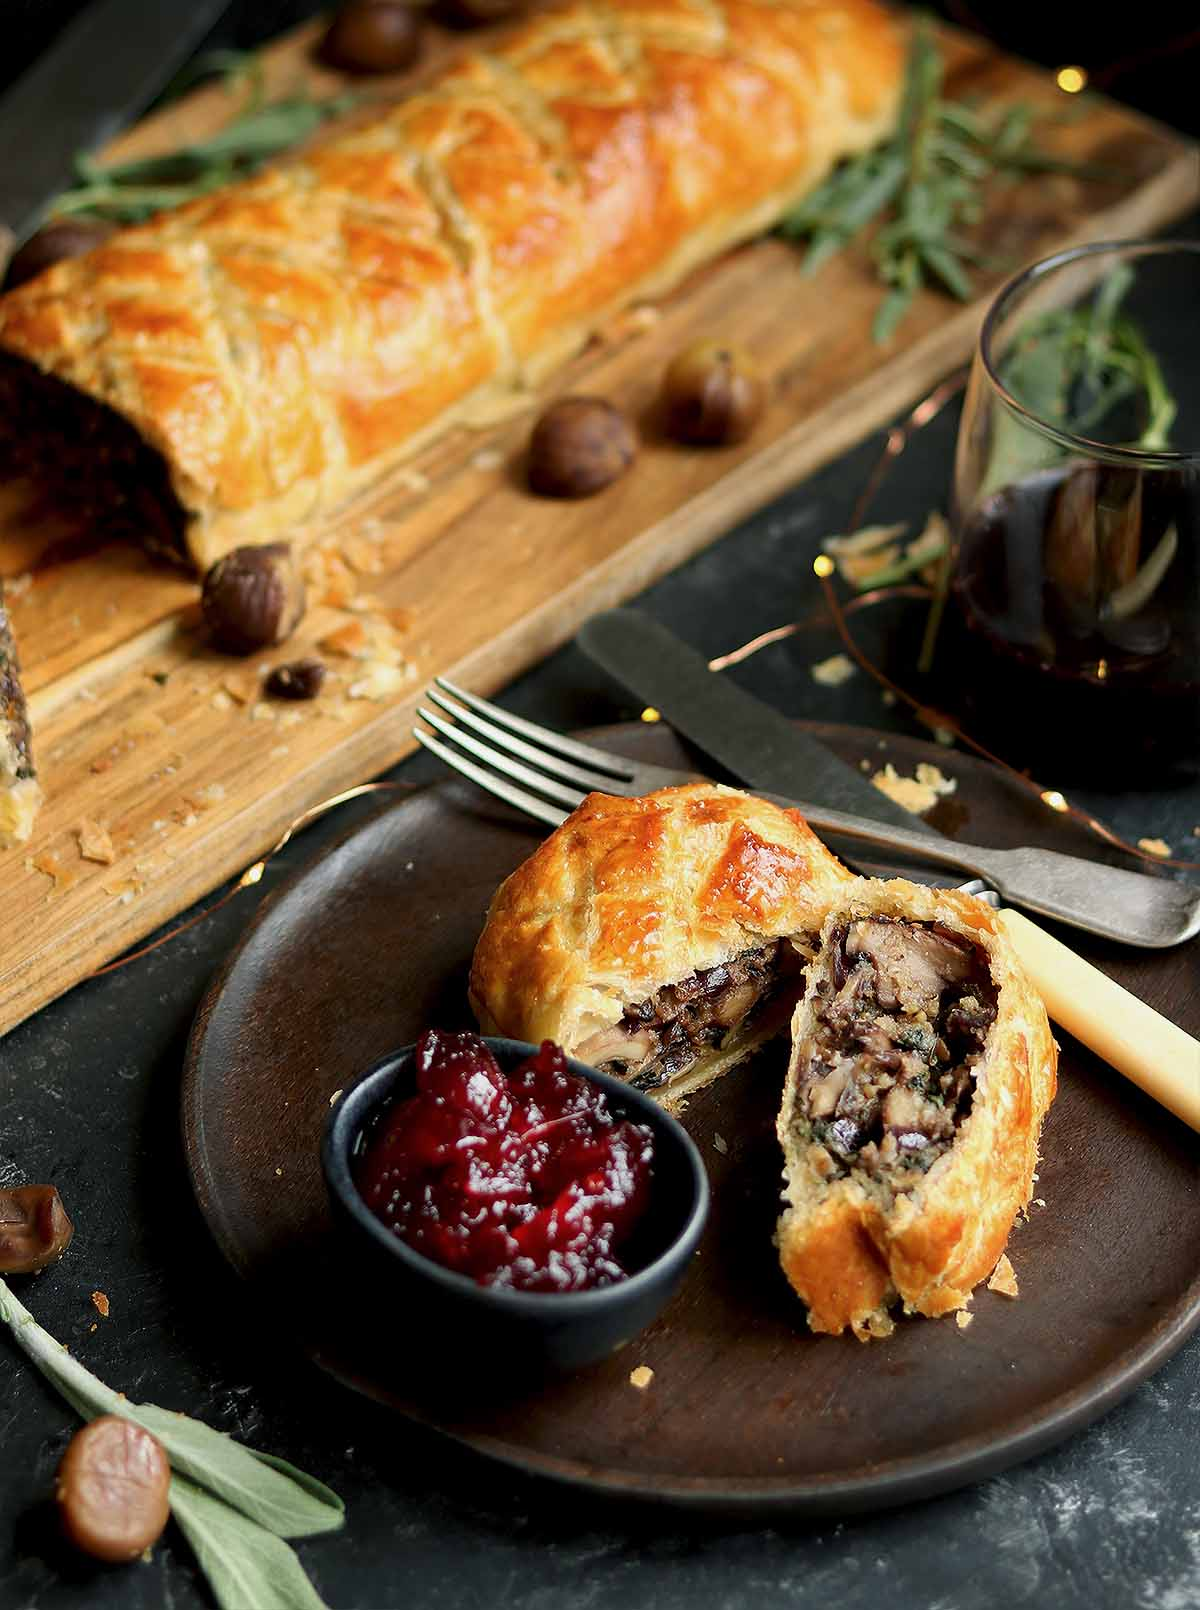 A mushroom mixture with chestnuts, spinach, caramelised onions, wrapped in puff pastry as a wellington, with a cranberry sauce, sage, and tarragon.